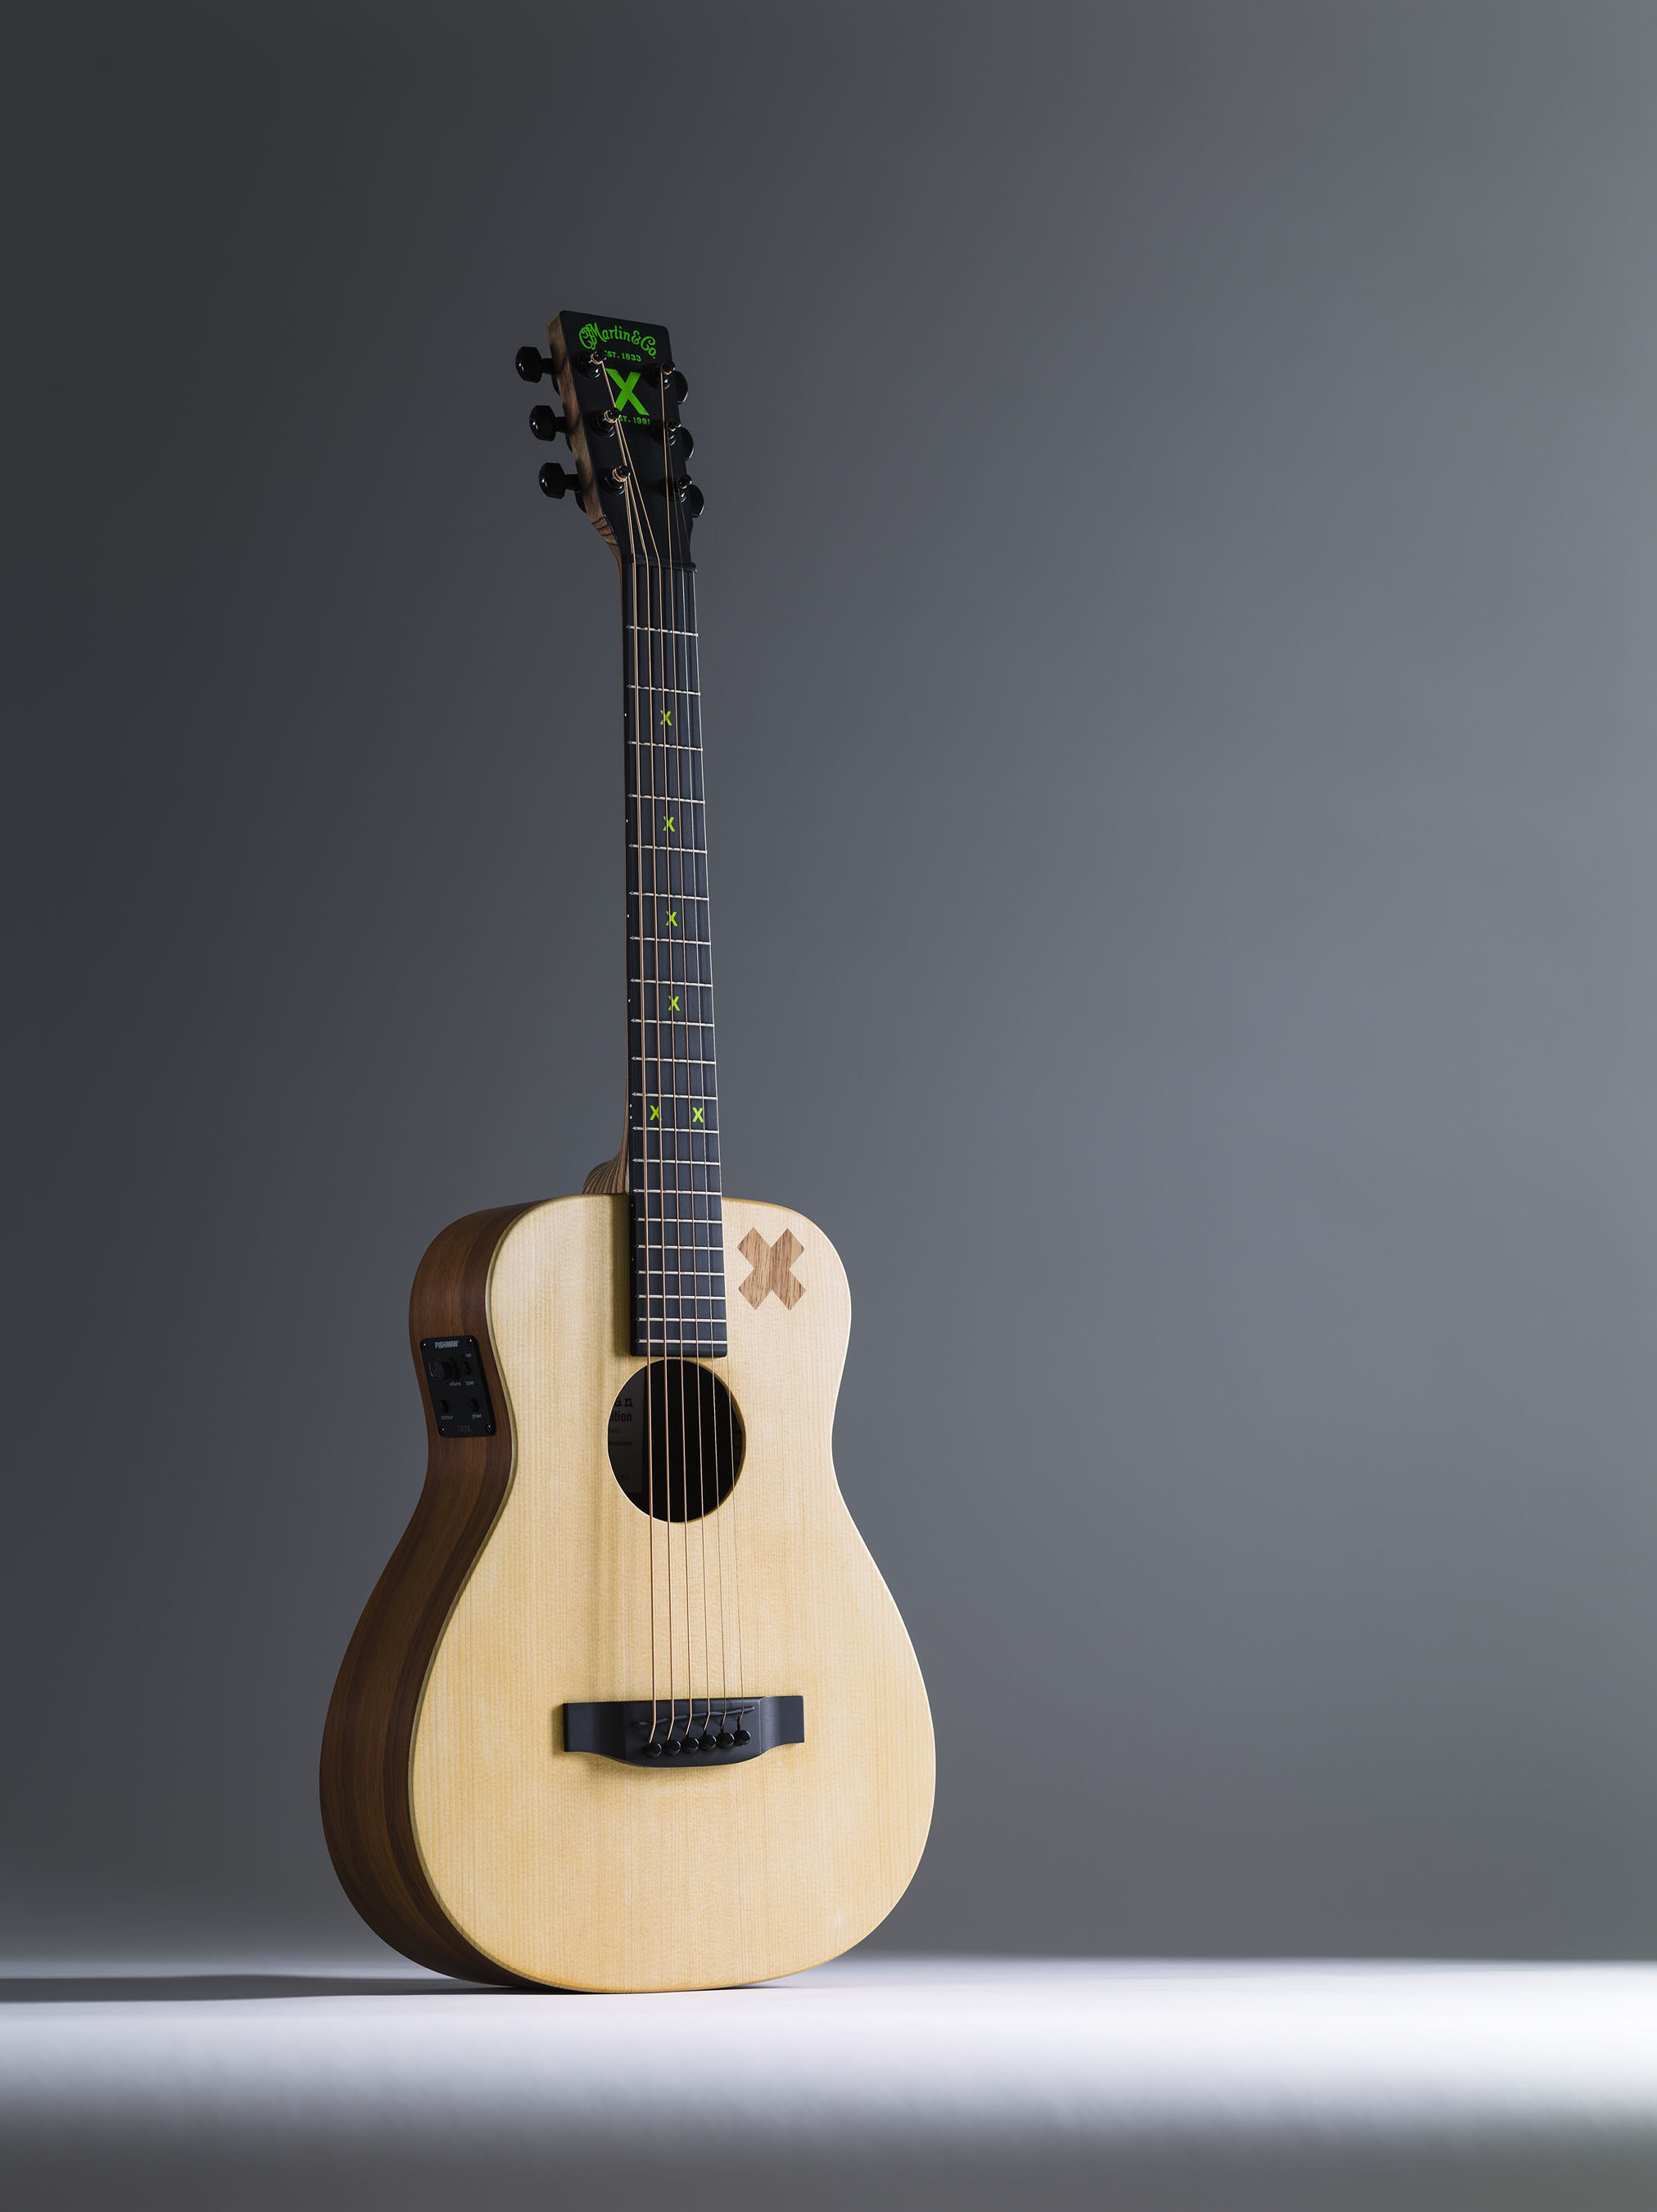 ed sheeran collaborates with martin guitar for the second time to create the ed sheeran x. Black Bedroom Furniture Sets. Home Design Ideas